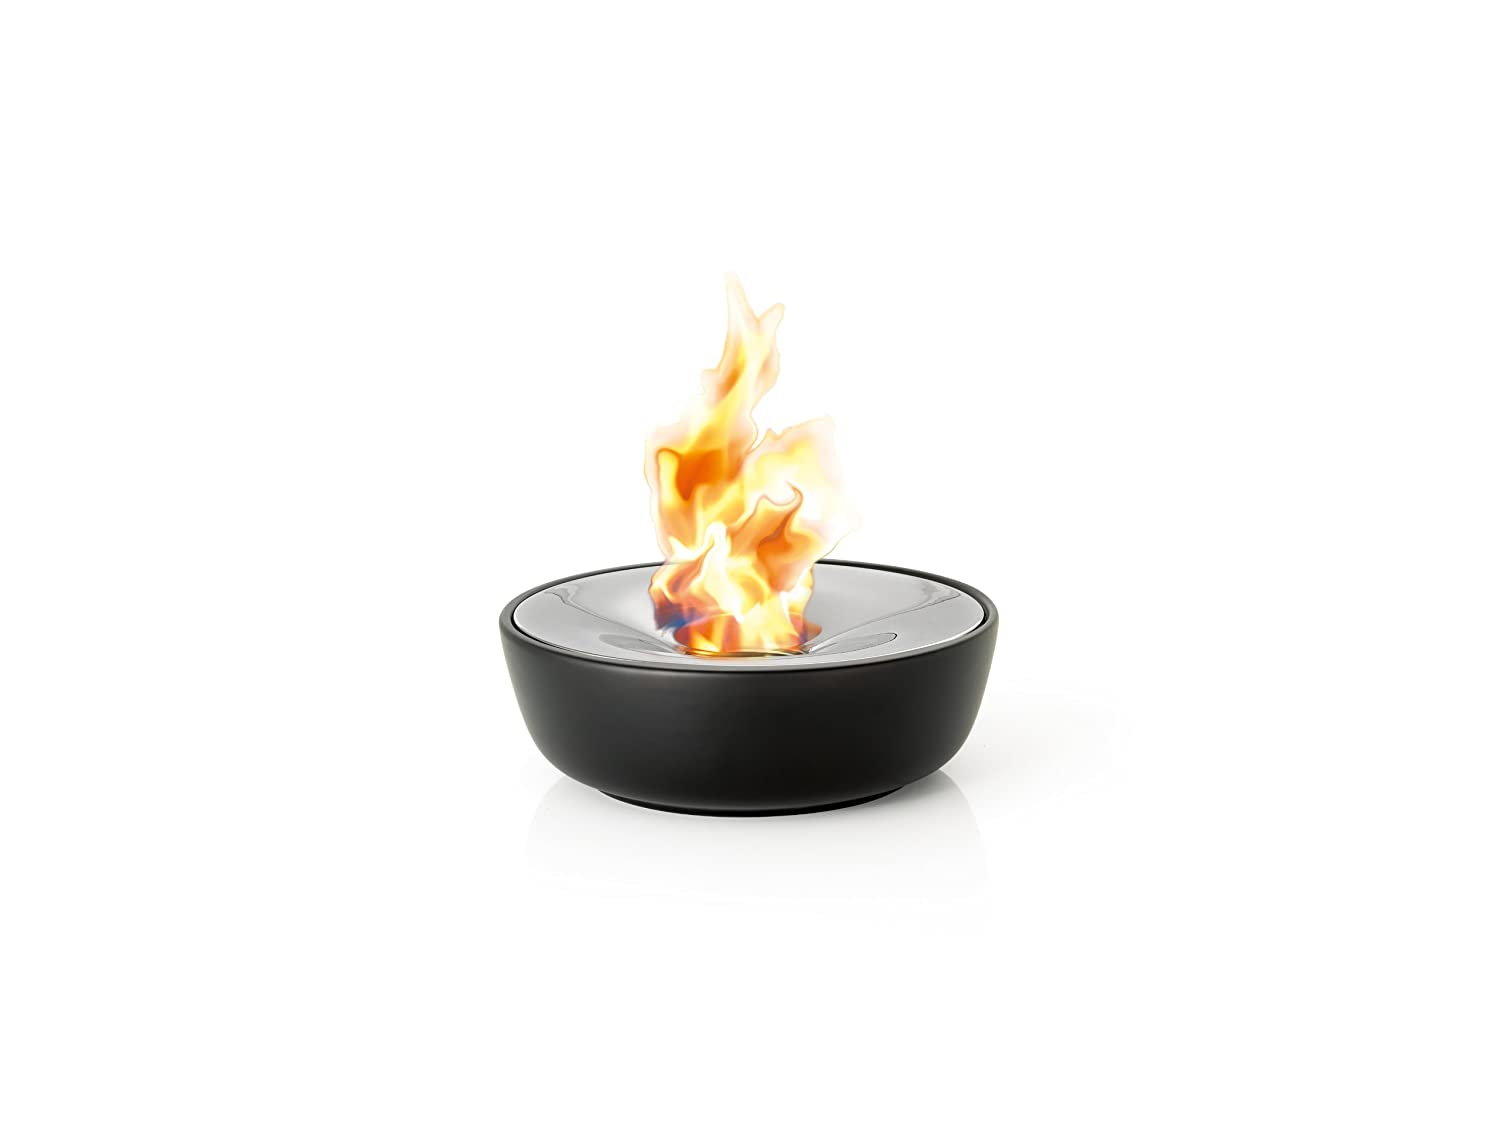 Blomus 65079 32 cm Diameter Gel Fire Pit - Dark Grey